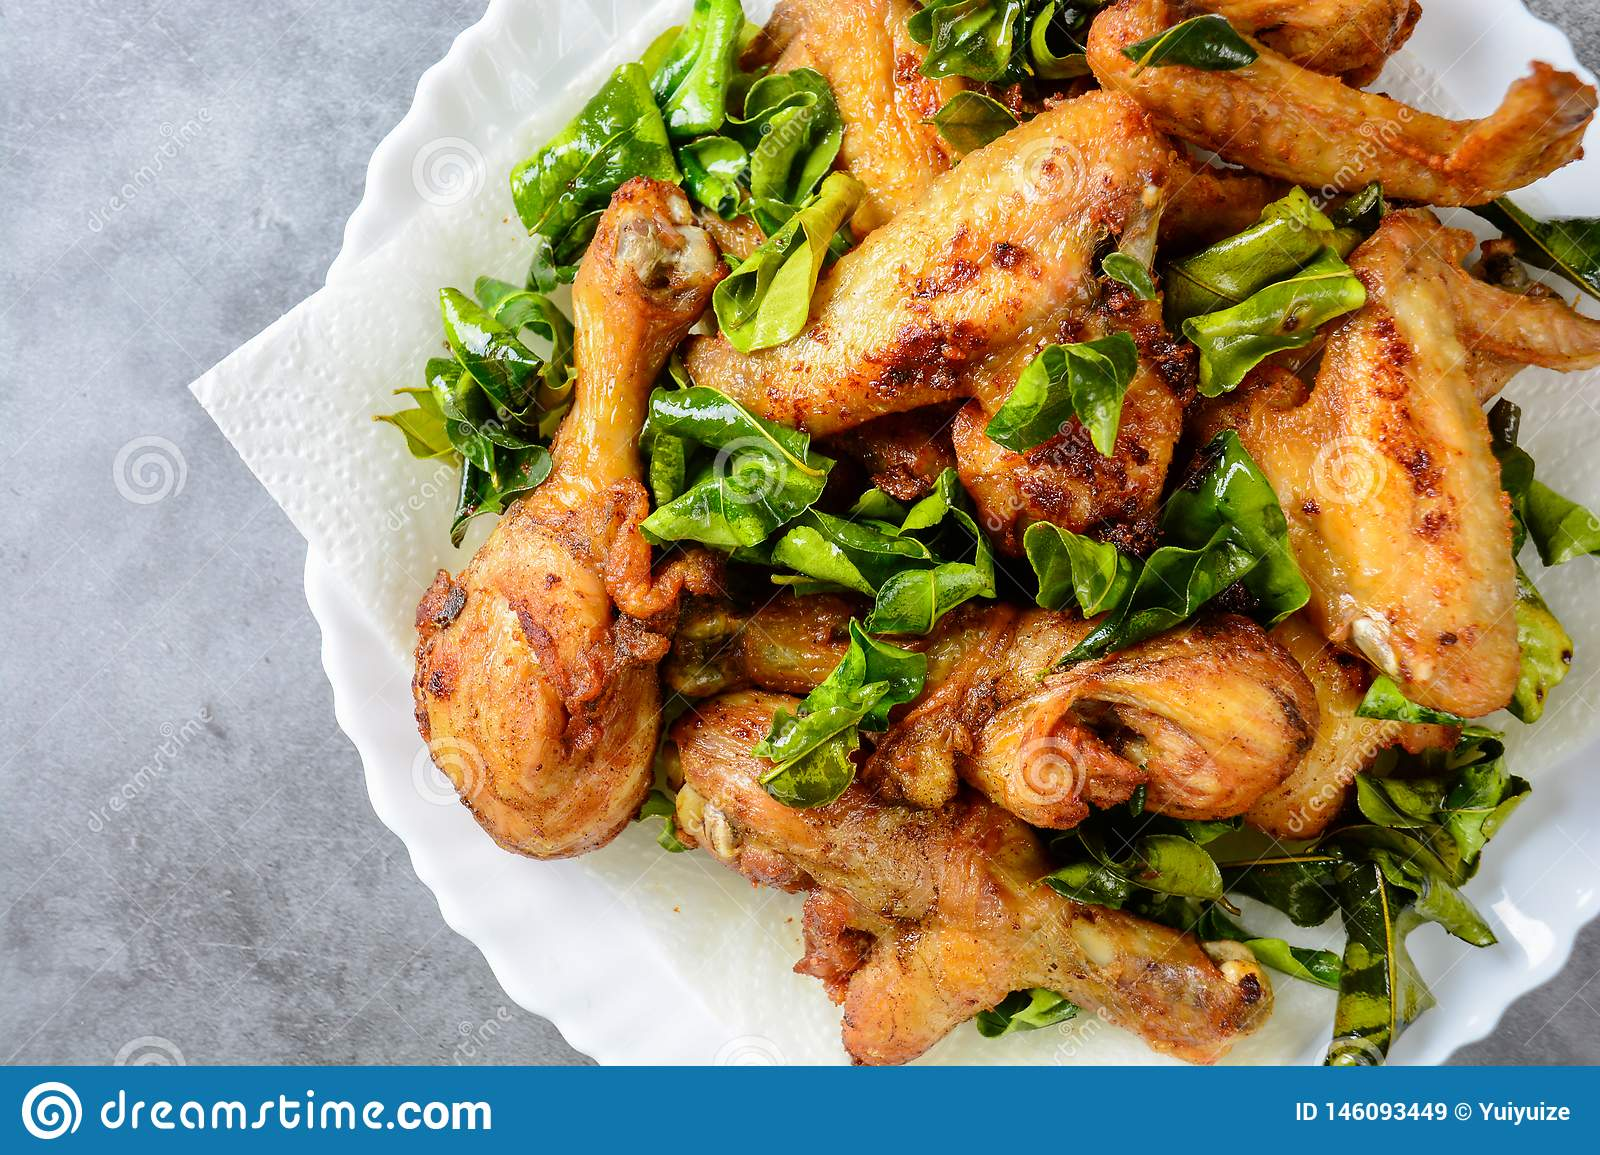 Fried crispy chicken wings with herbs